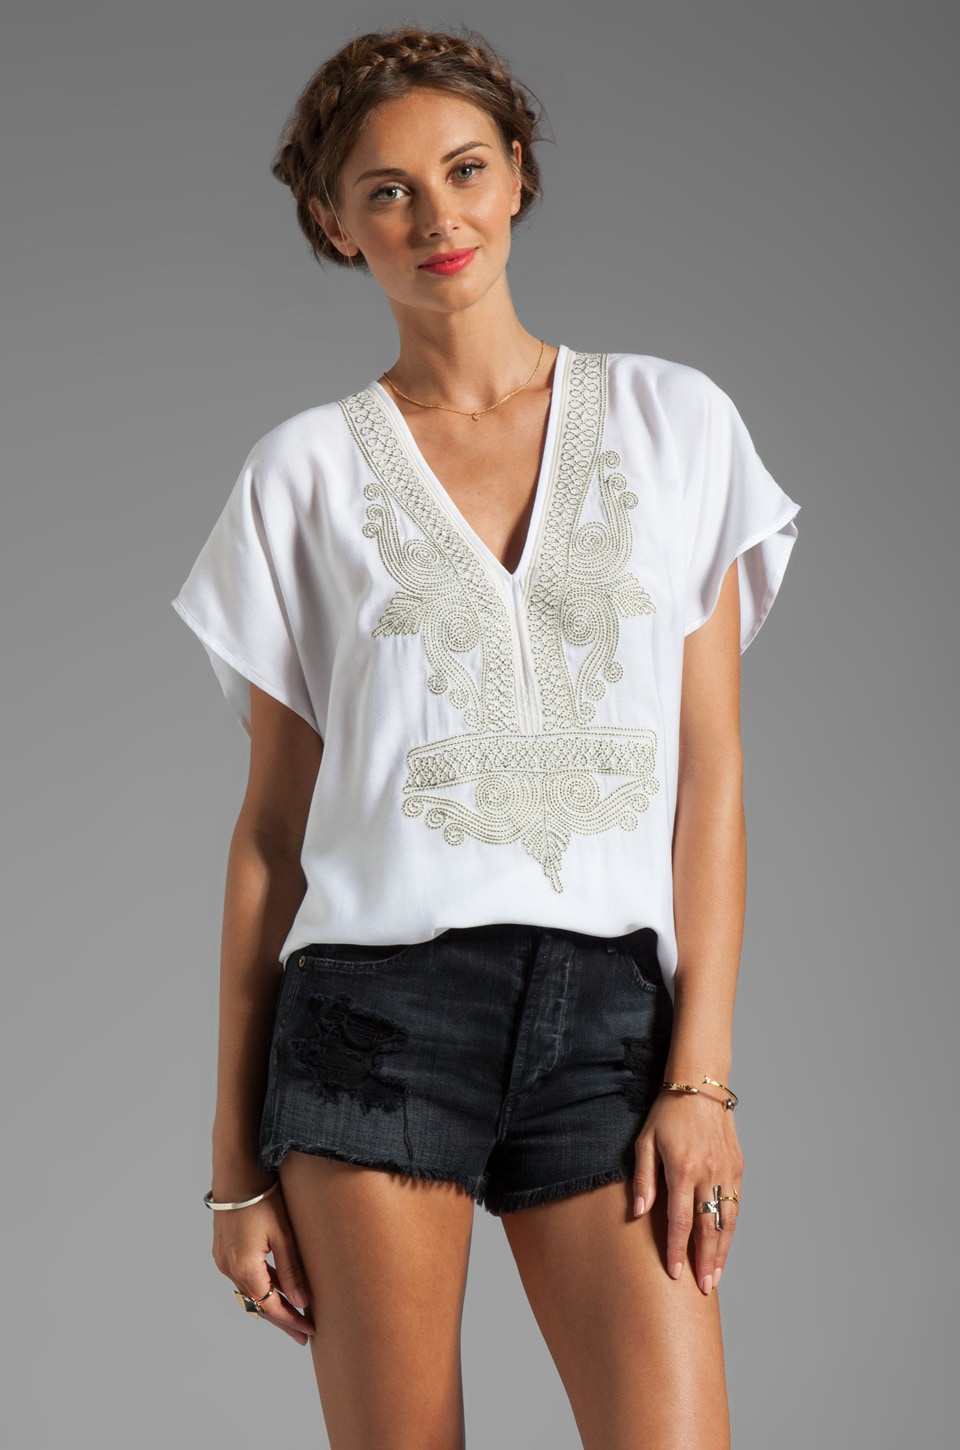 Twelfth Street By Cynthia Vincent Muro Turk Embellished Blouse in White